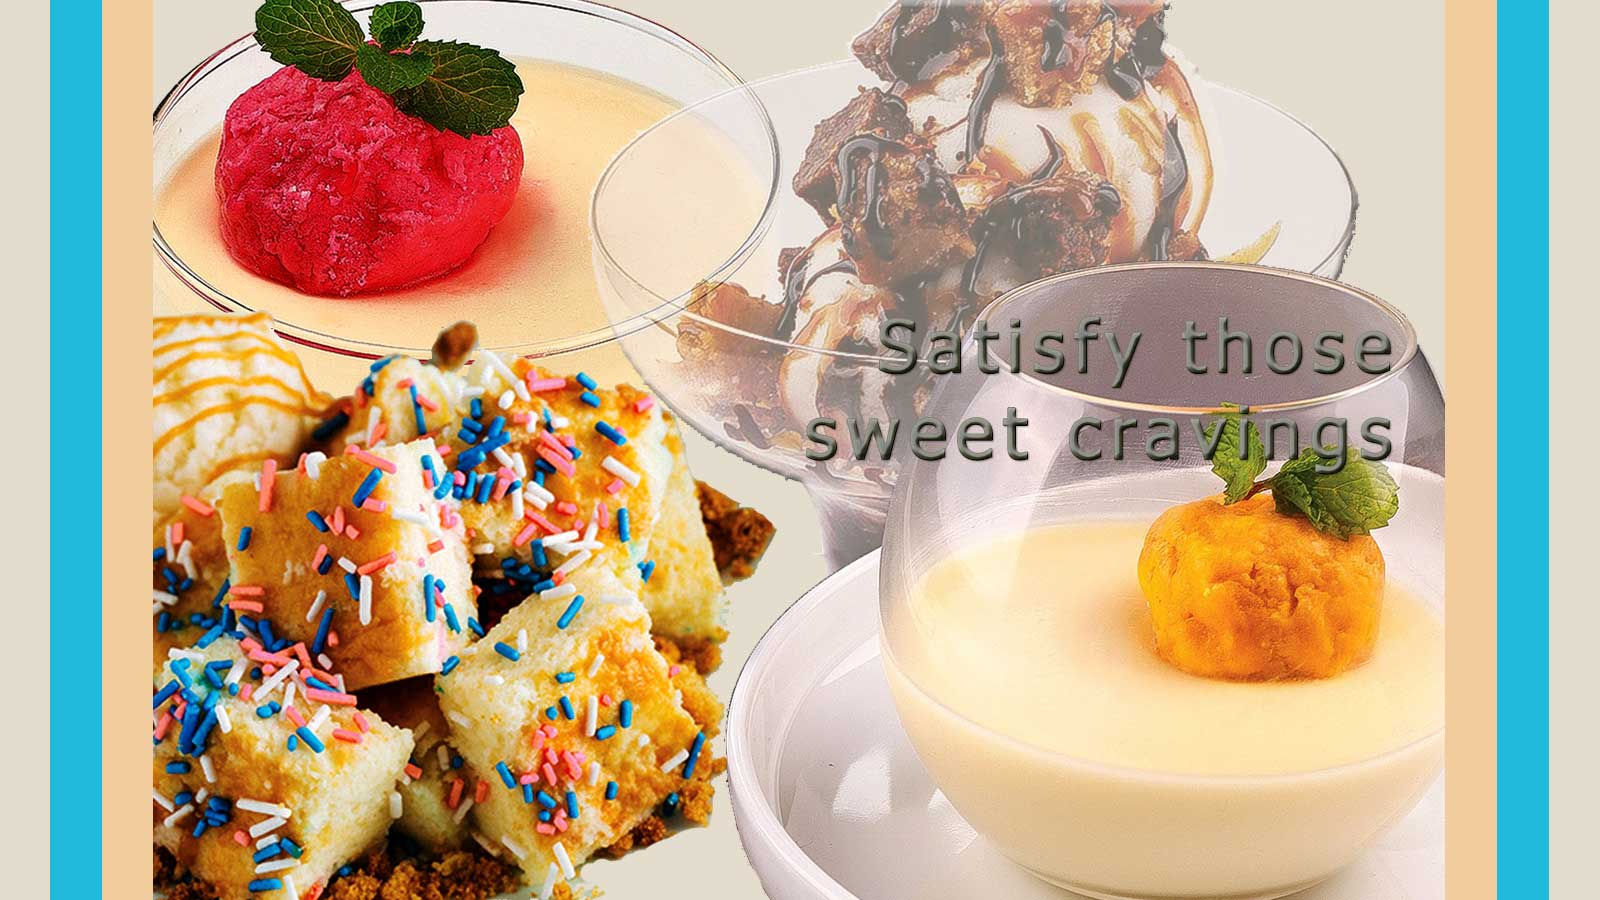 Satisfy those sweet cravings with free dessert from Citi cards